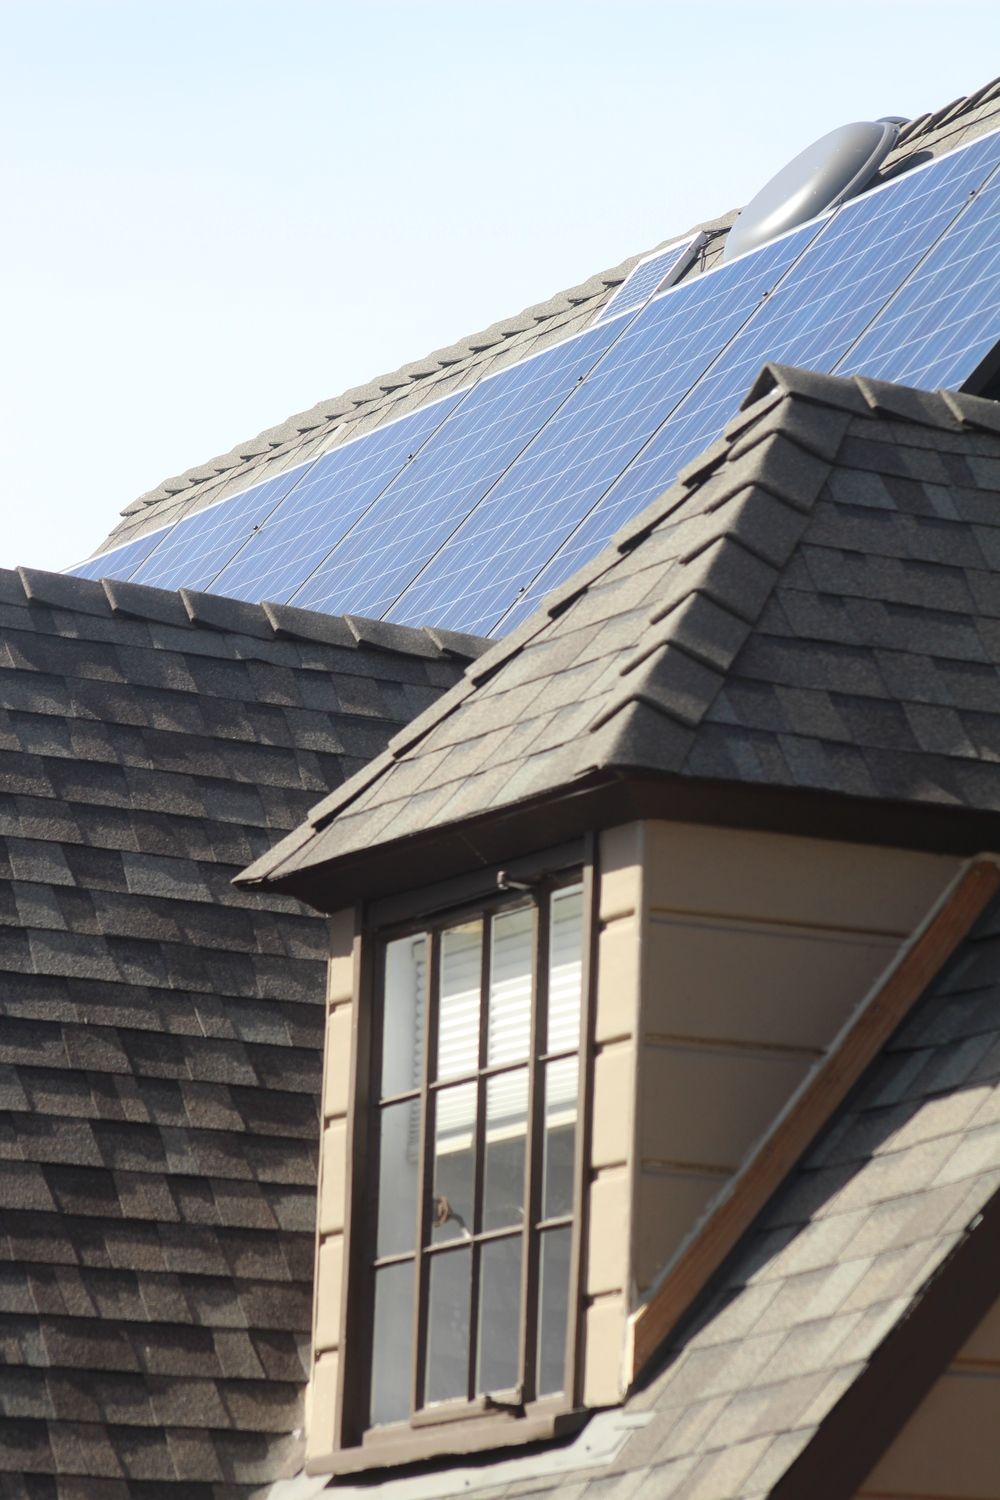 Solar panels have been shown to increase home value in the Bay Area.